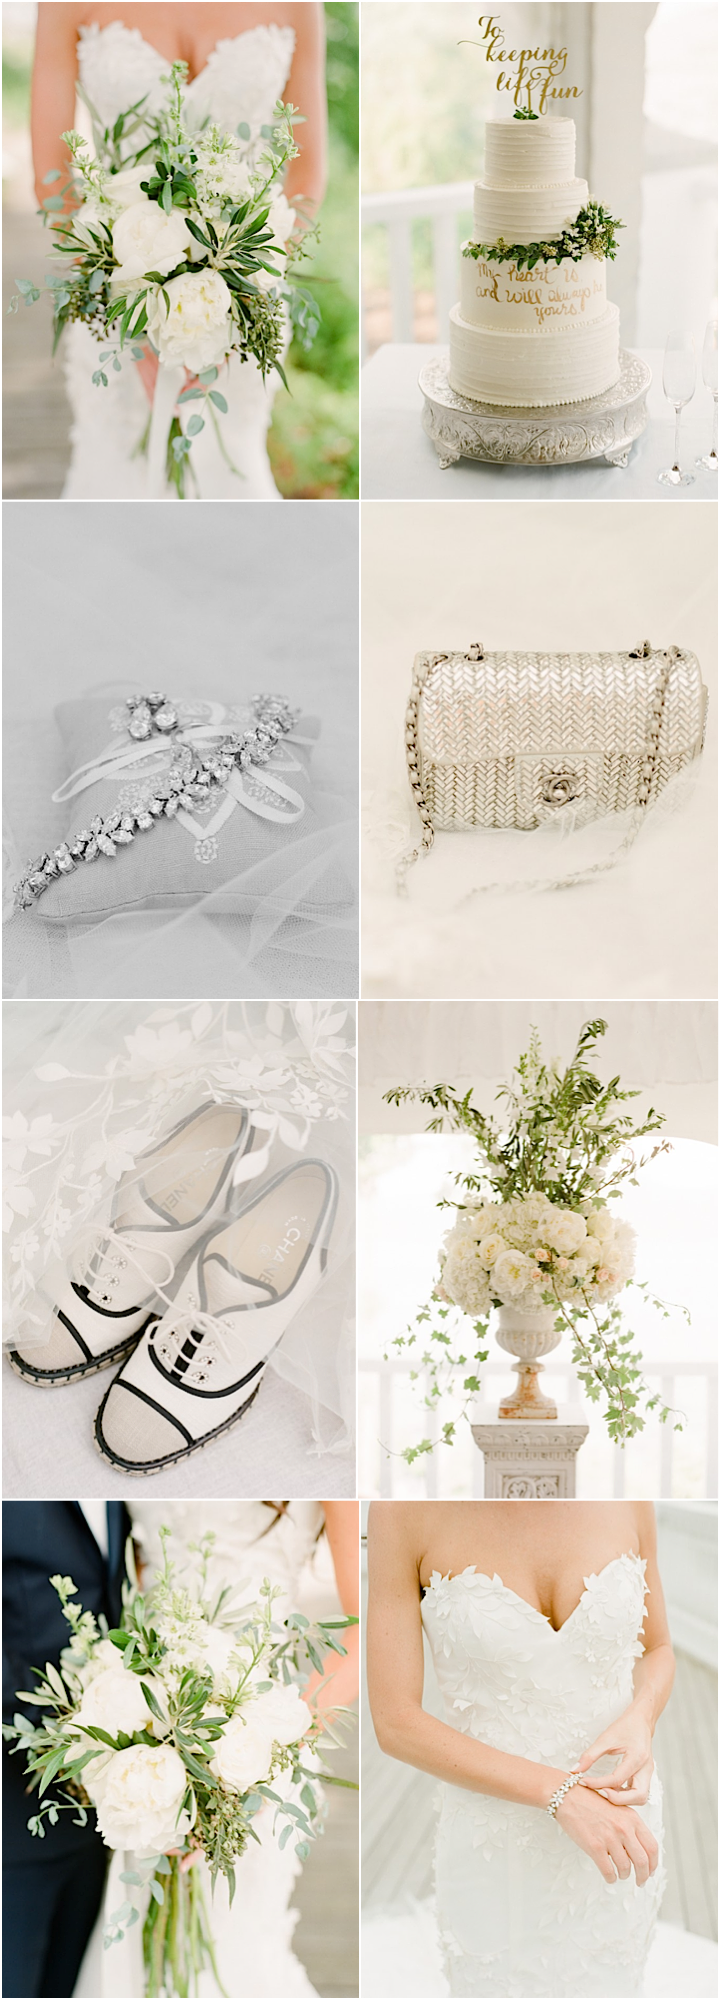 Unique New York Wedding Theme Ideas Vignette - Wedding Dress ...